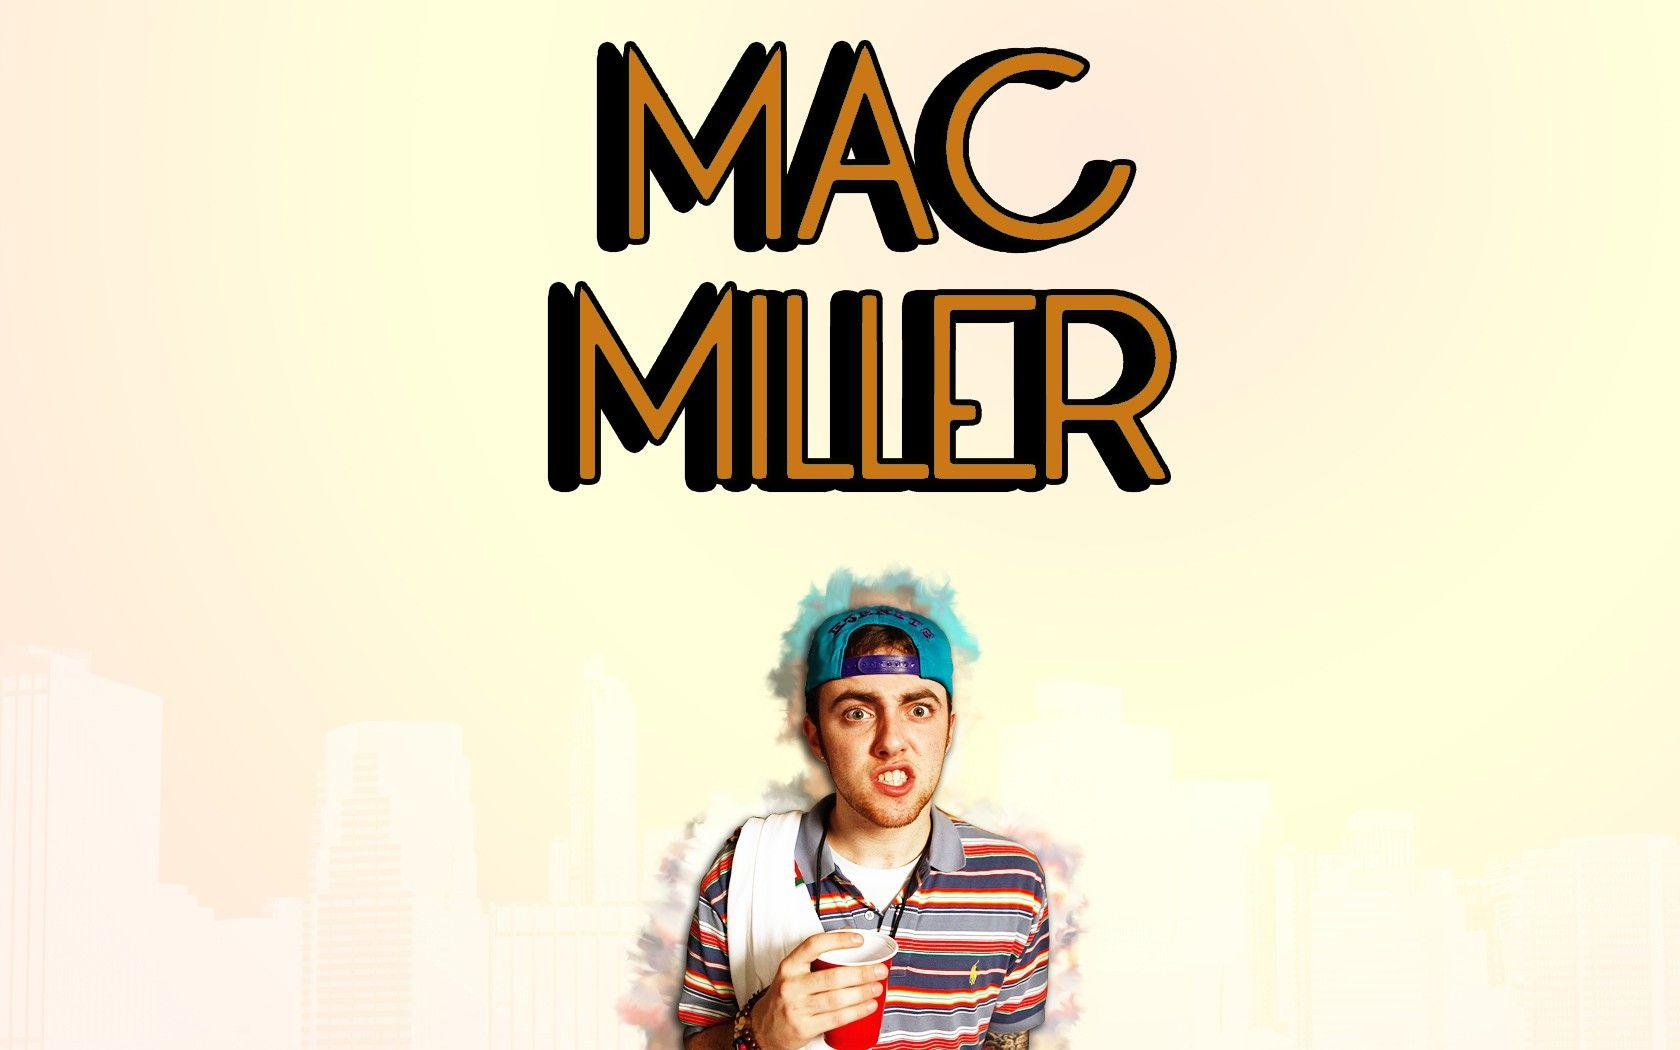 Mac Miller Wallpaper – Create a Personalized Look on Your Mobile Phone